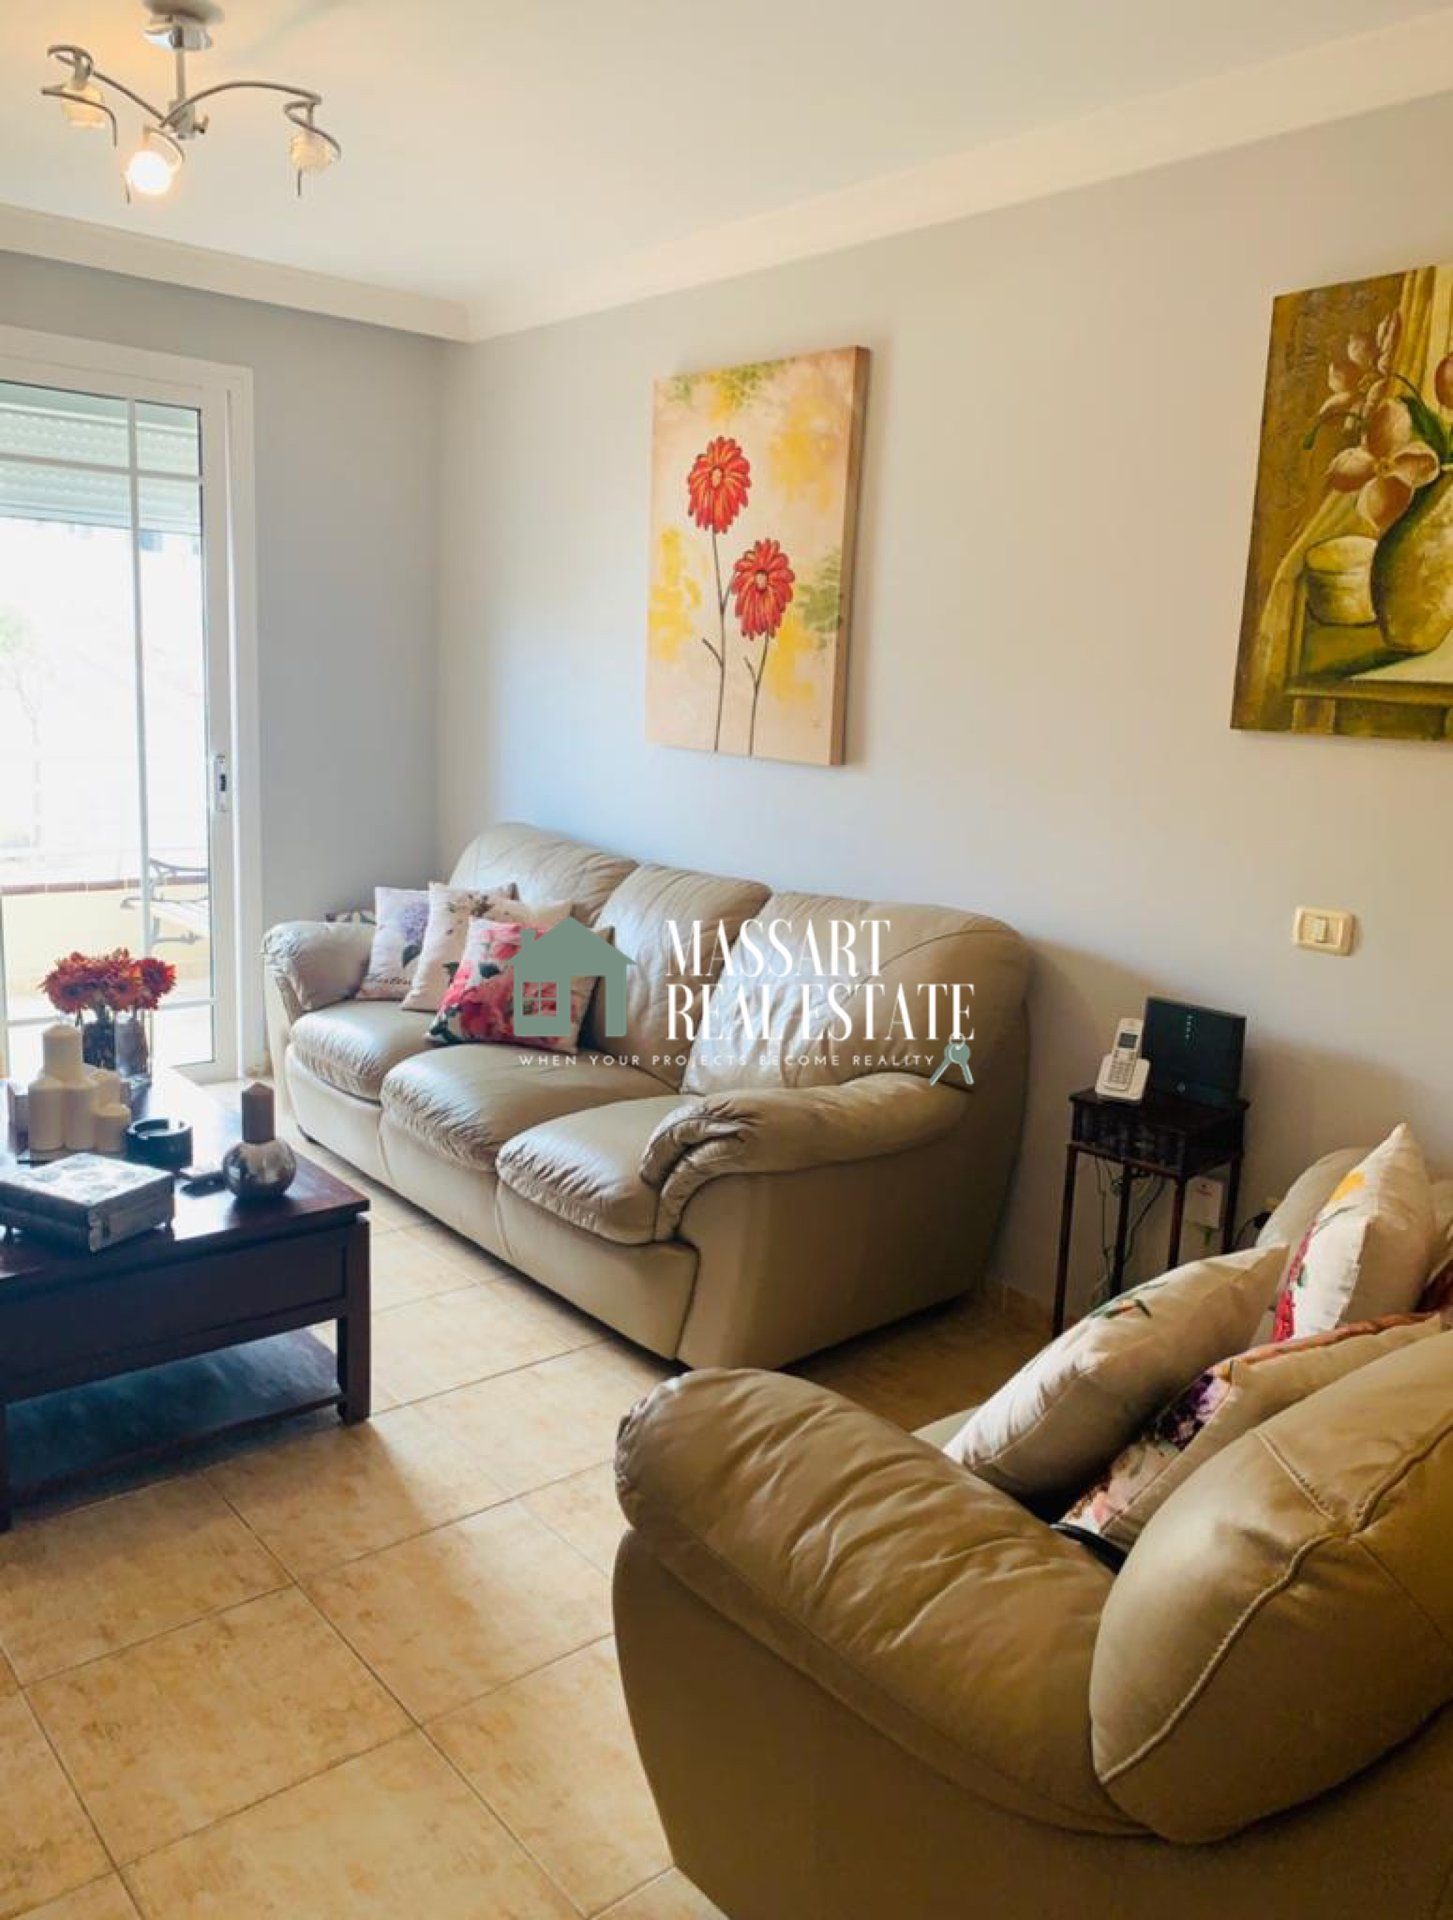 75 m2 apartment fully furnished and located in a quiet and central area of San Isidro.